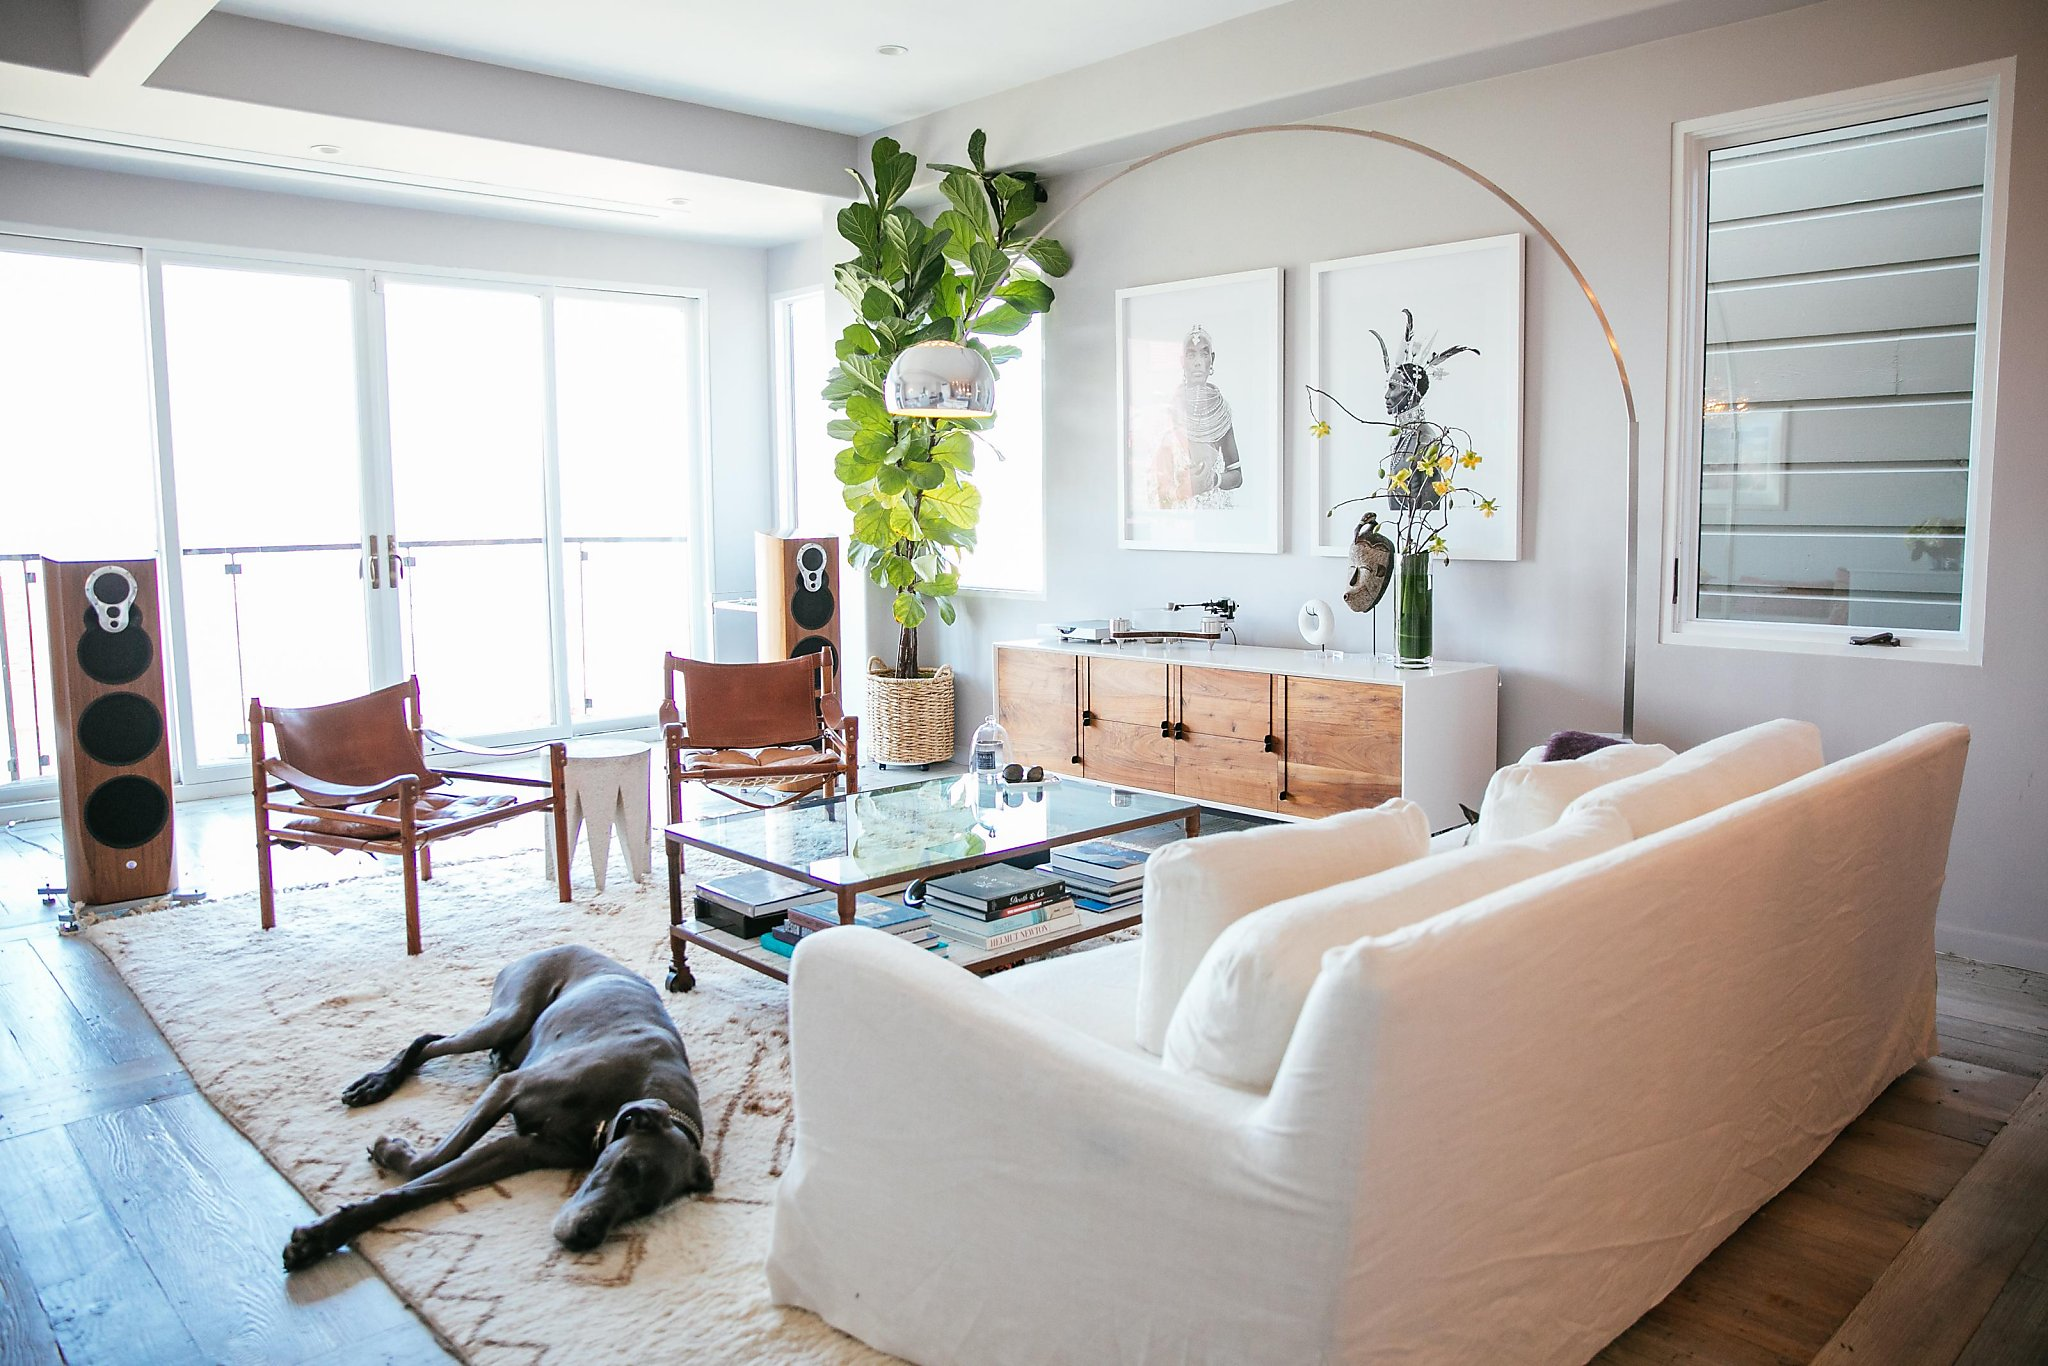 Move To S F Brings New Home And New Career In Interior Design San Francisco Chronicle